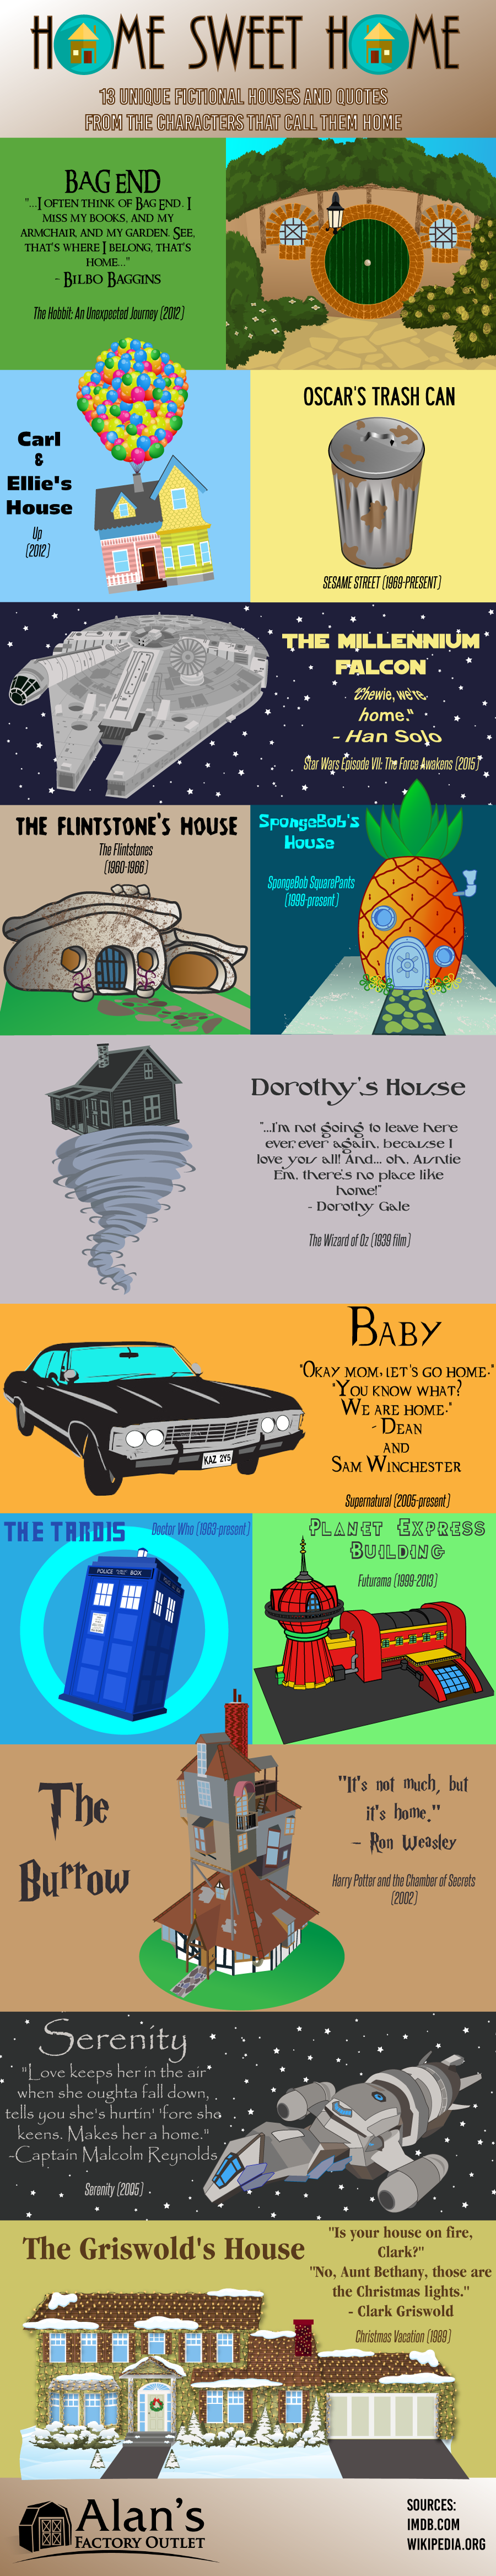 There's No Place Like Home: 13 Imaginary Homes from Fiction and Quotes of Their Famous Residents - Infographic